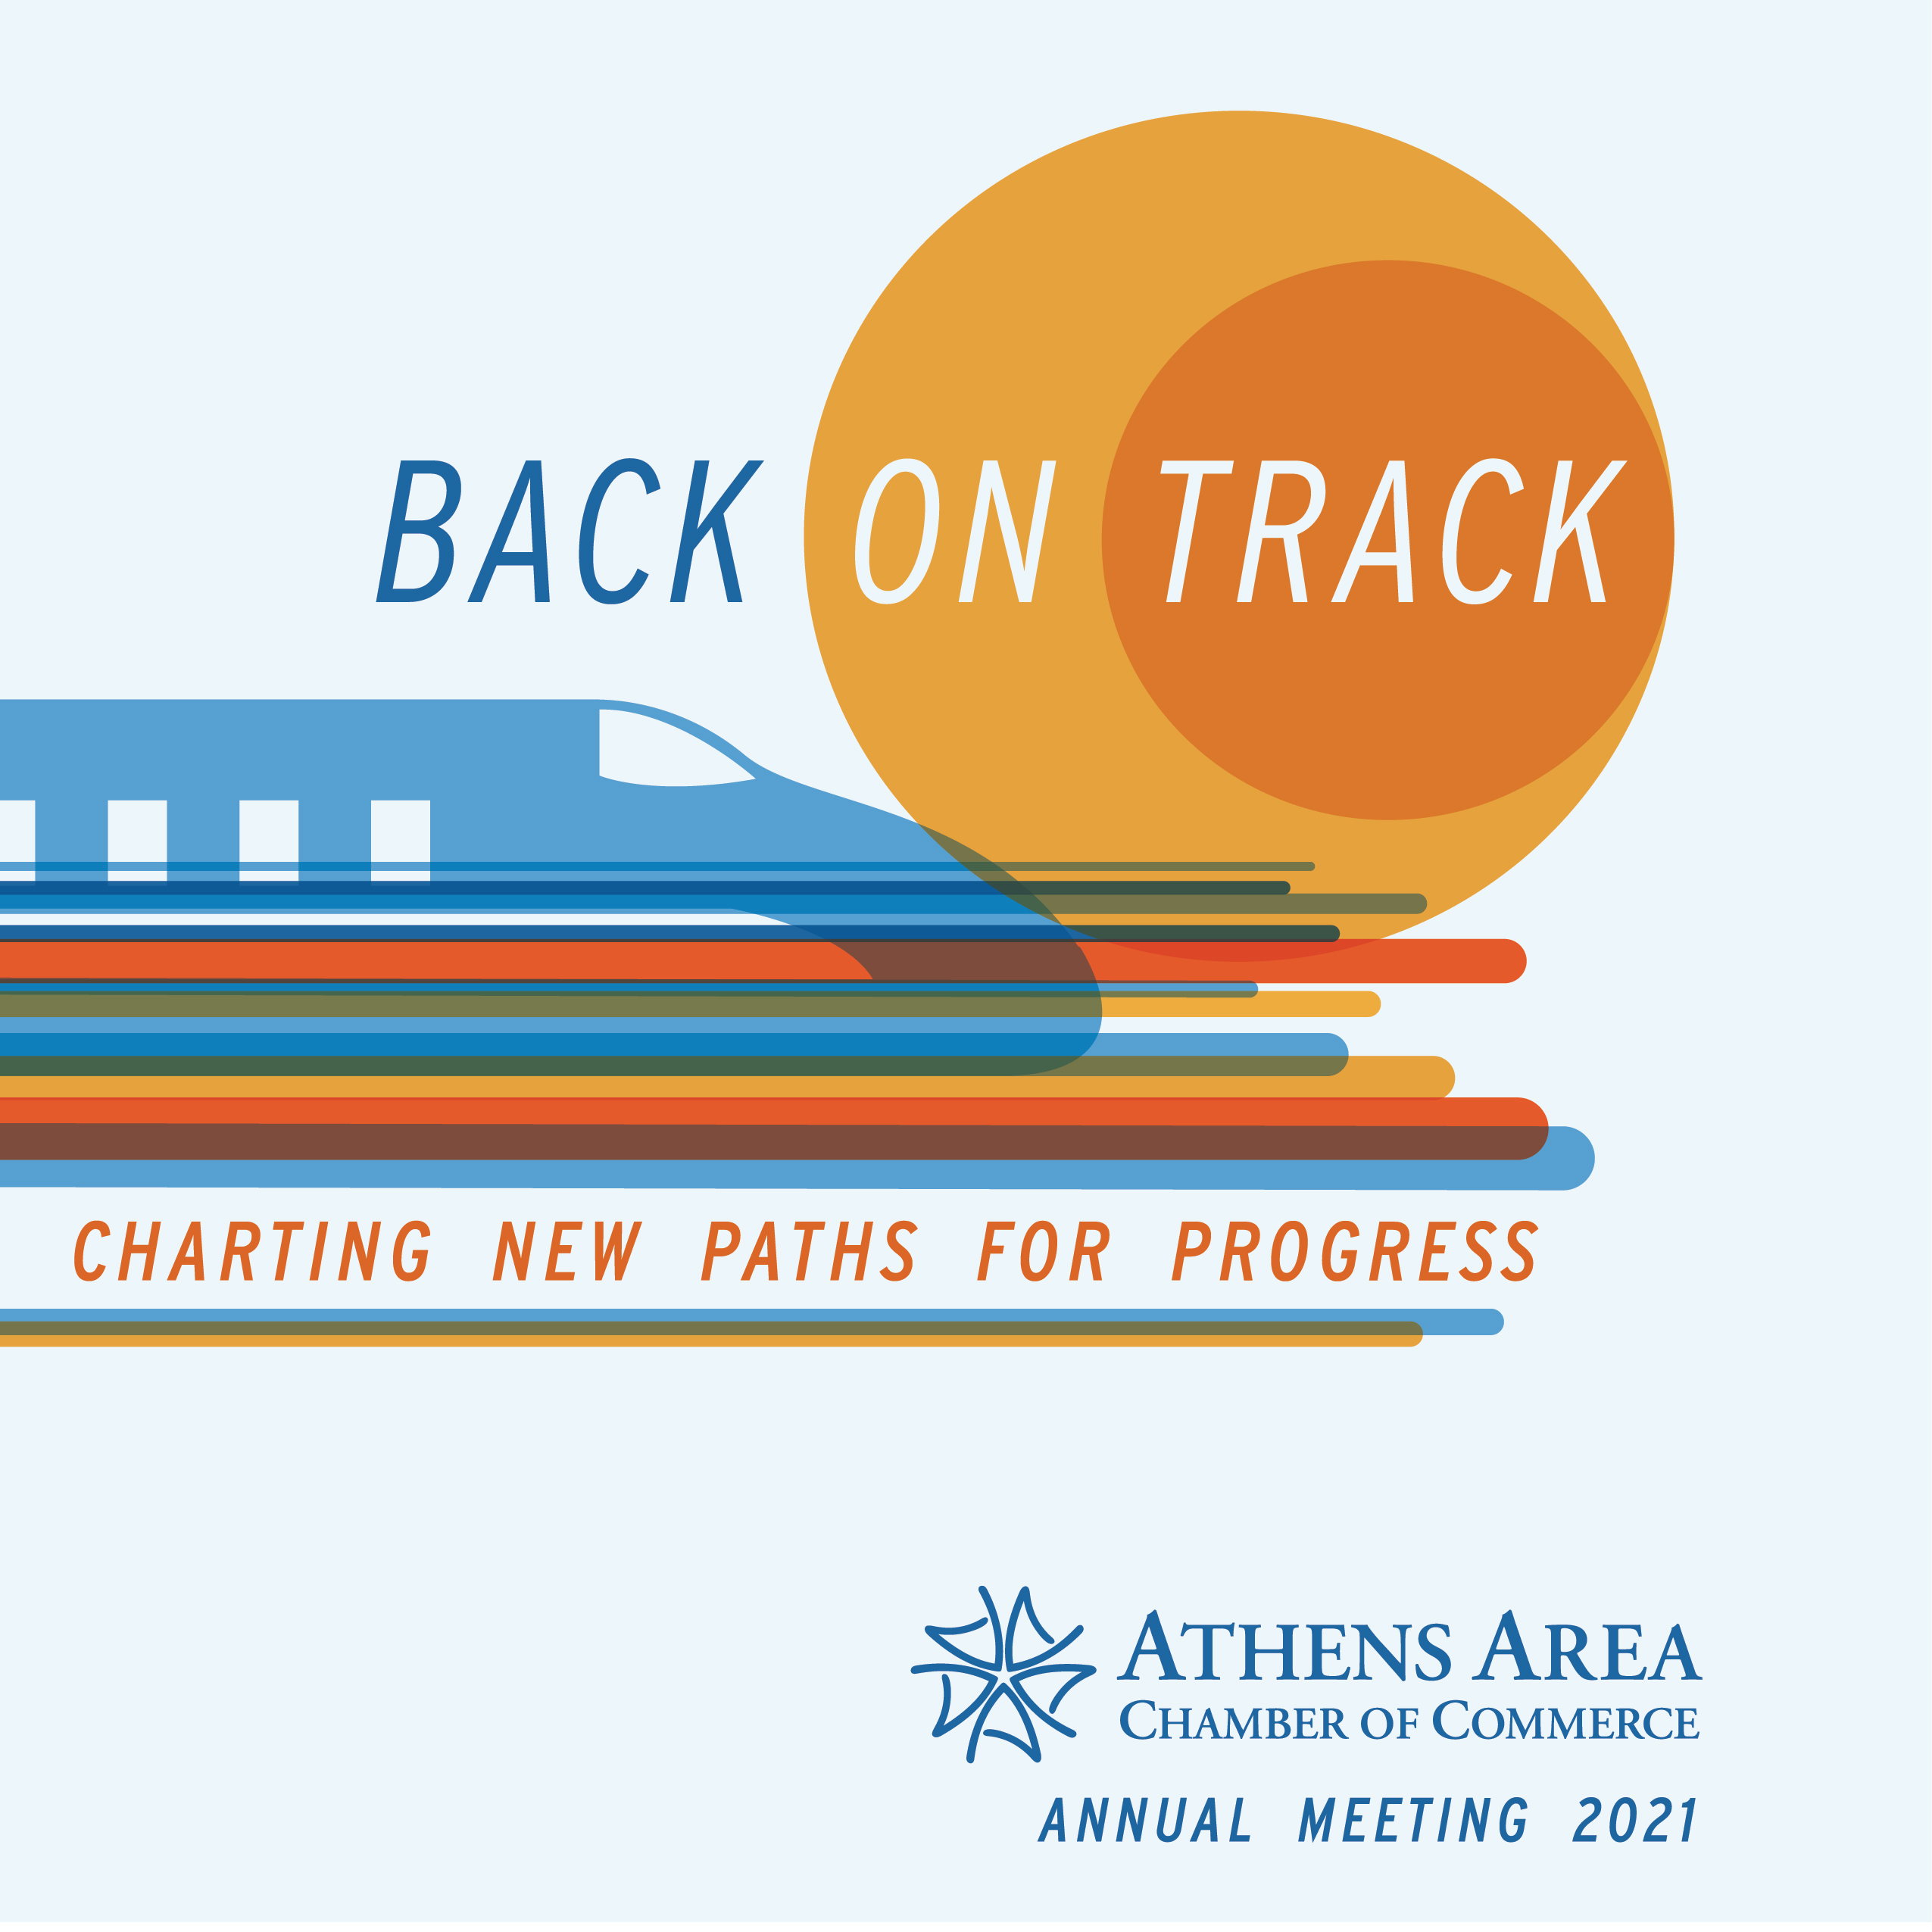 ATHENS_CHAMBER_BACK_ON_TRACK_SQUARE